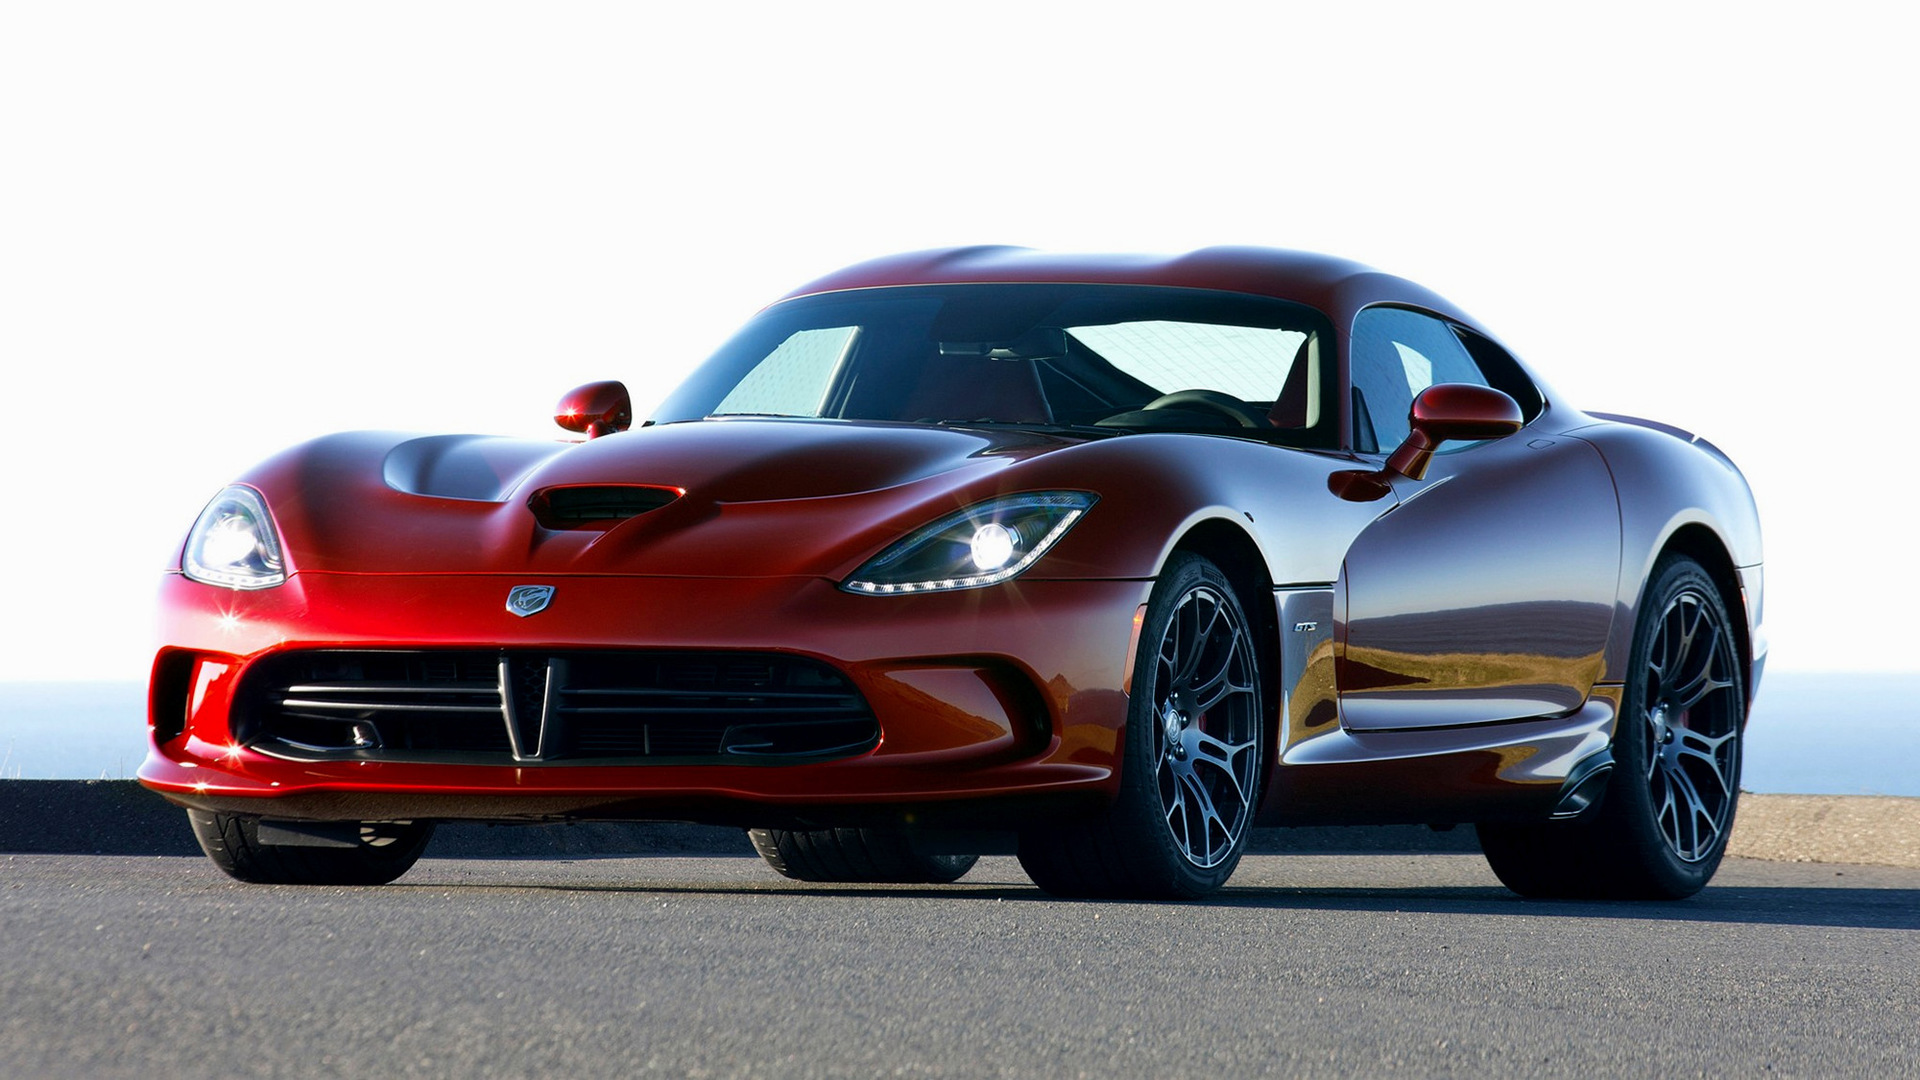 Srt Viper Gts 2013 Wallpapers And Hd Images Car Pixel